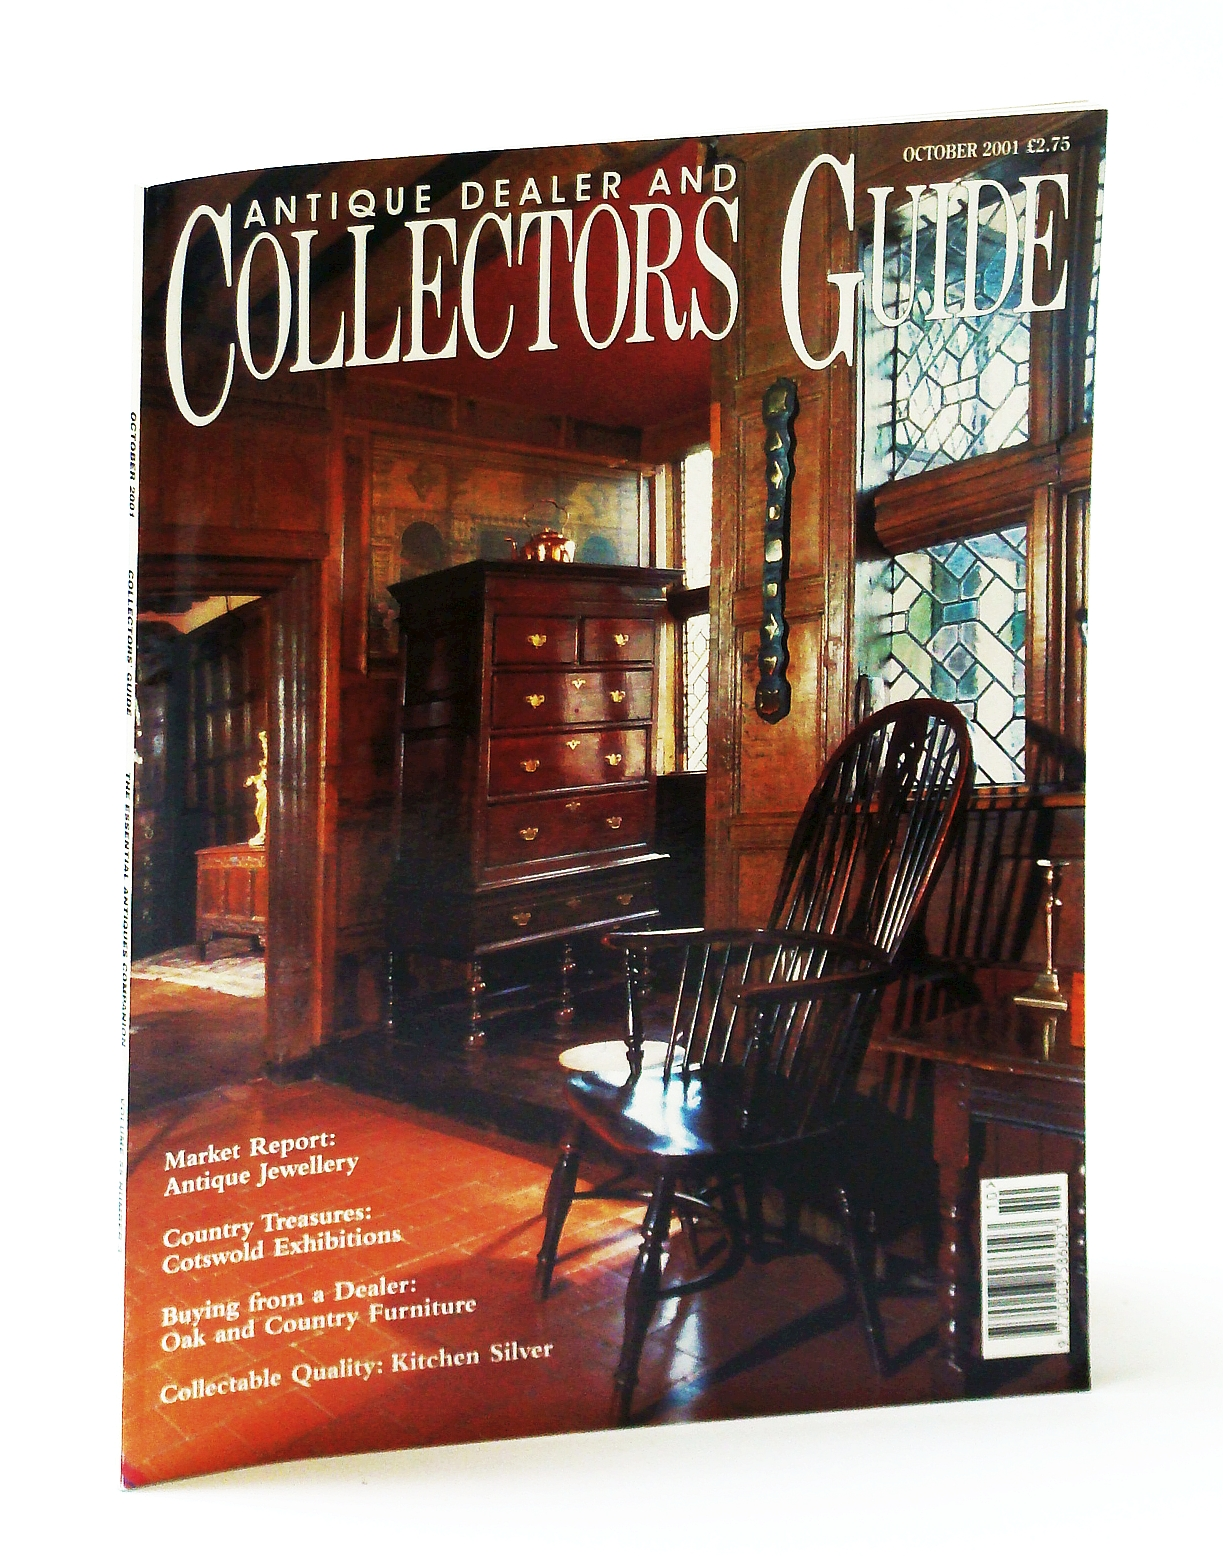 Image for Antique Dealer and Collectors Guide Magazine, October (Oct.) 2001 - Edward John Gregory (1850-1909)